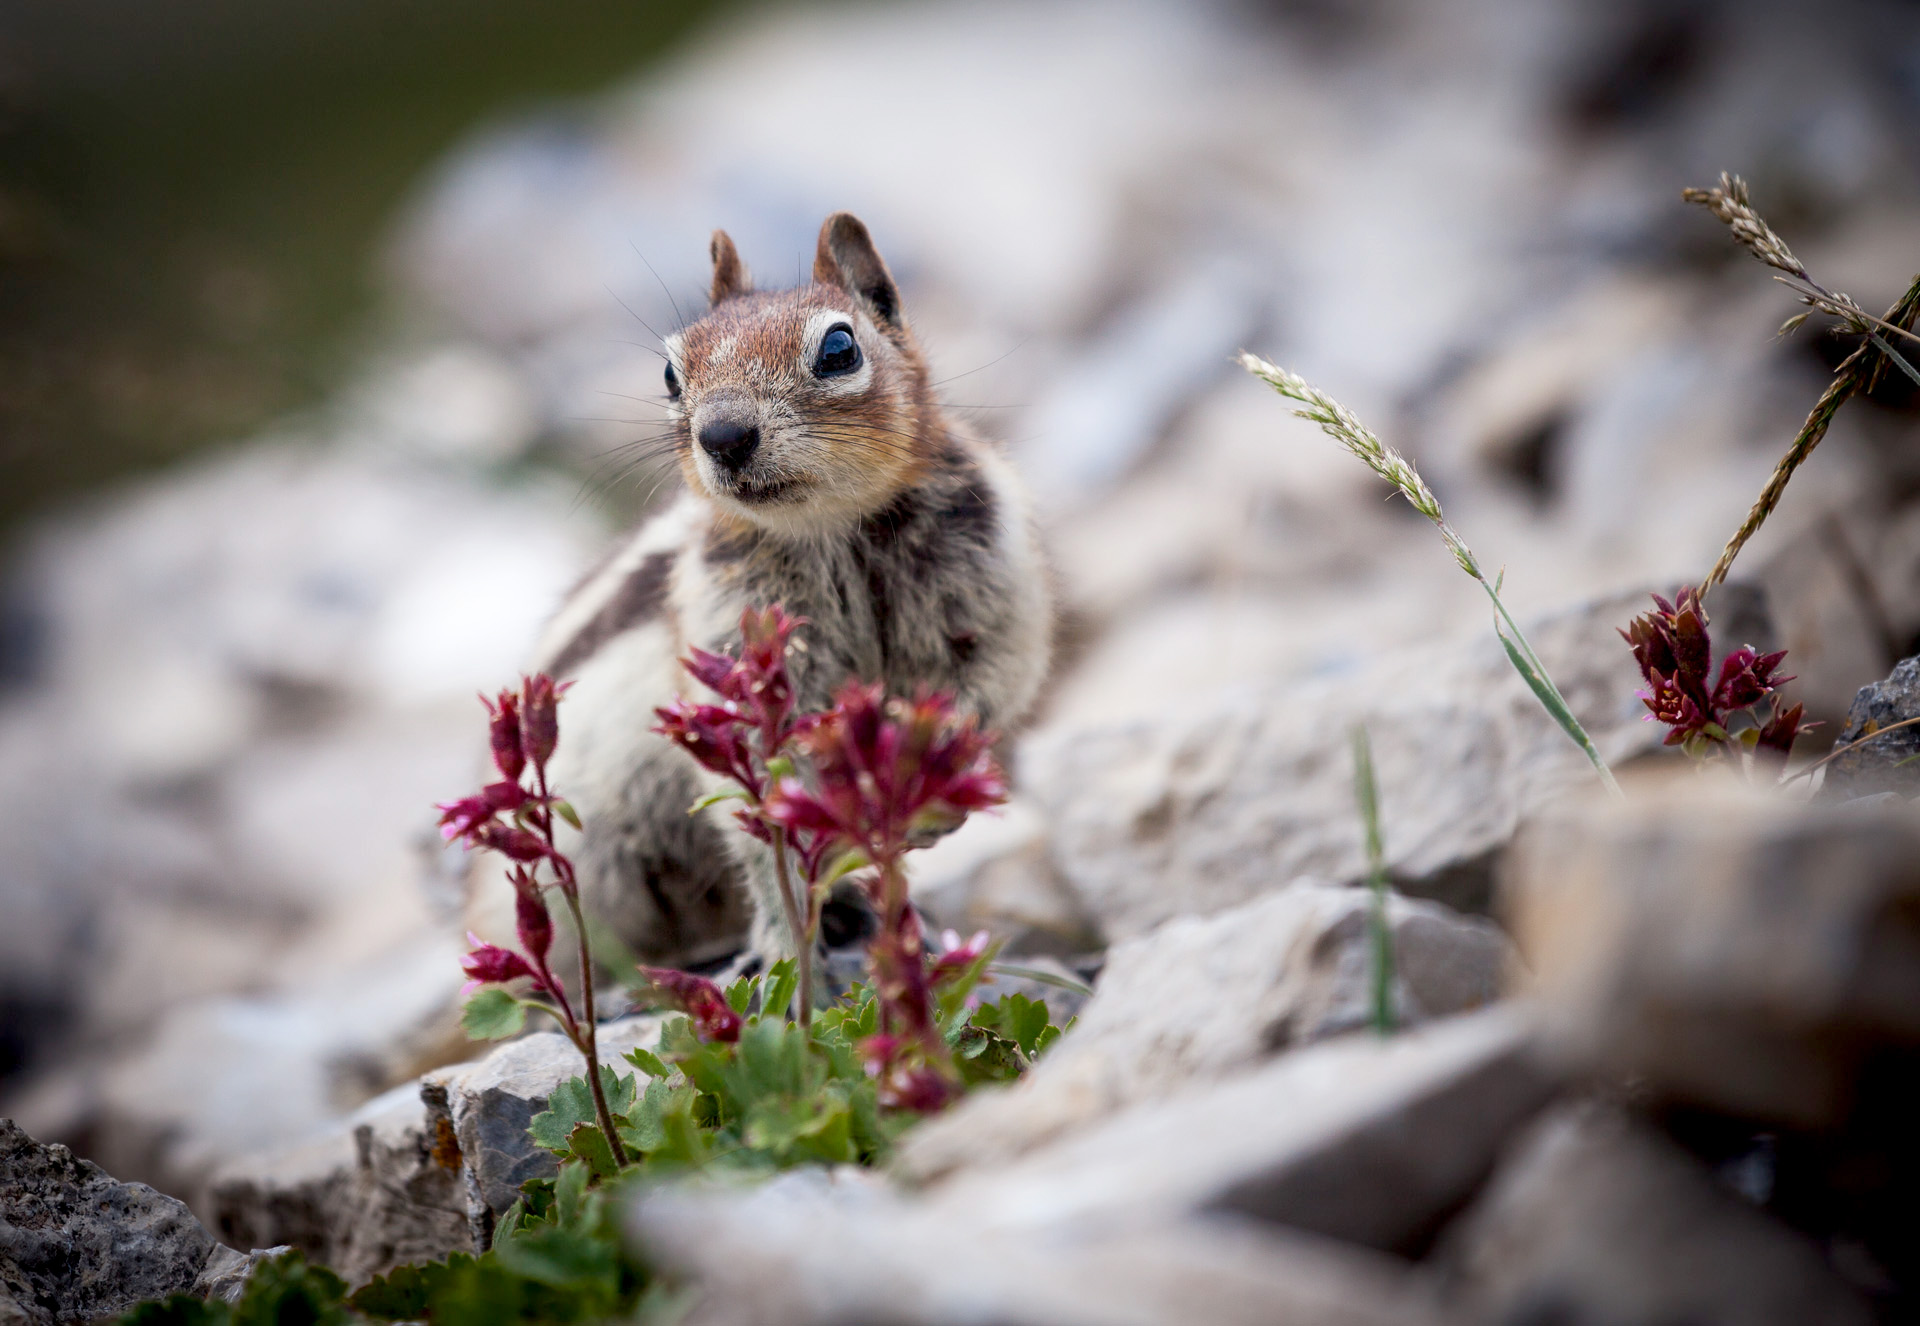 Also from my trip to the Rockies, a golden-mantled ground squirrel curiously approaches during one of our day hikes.